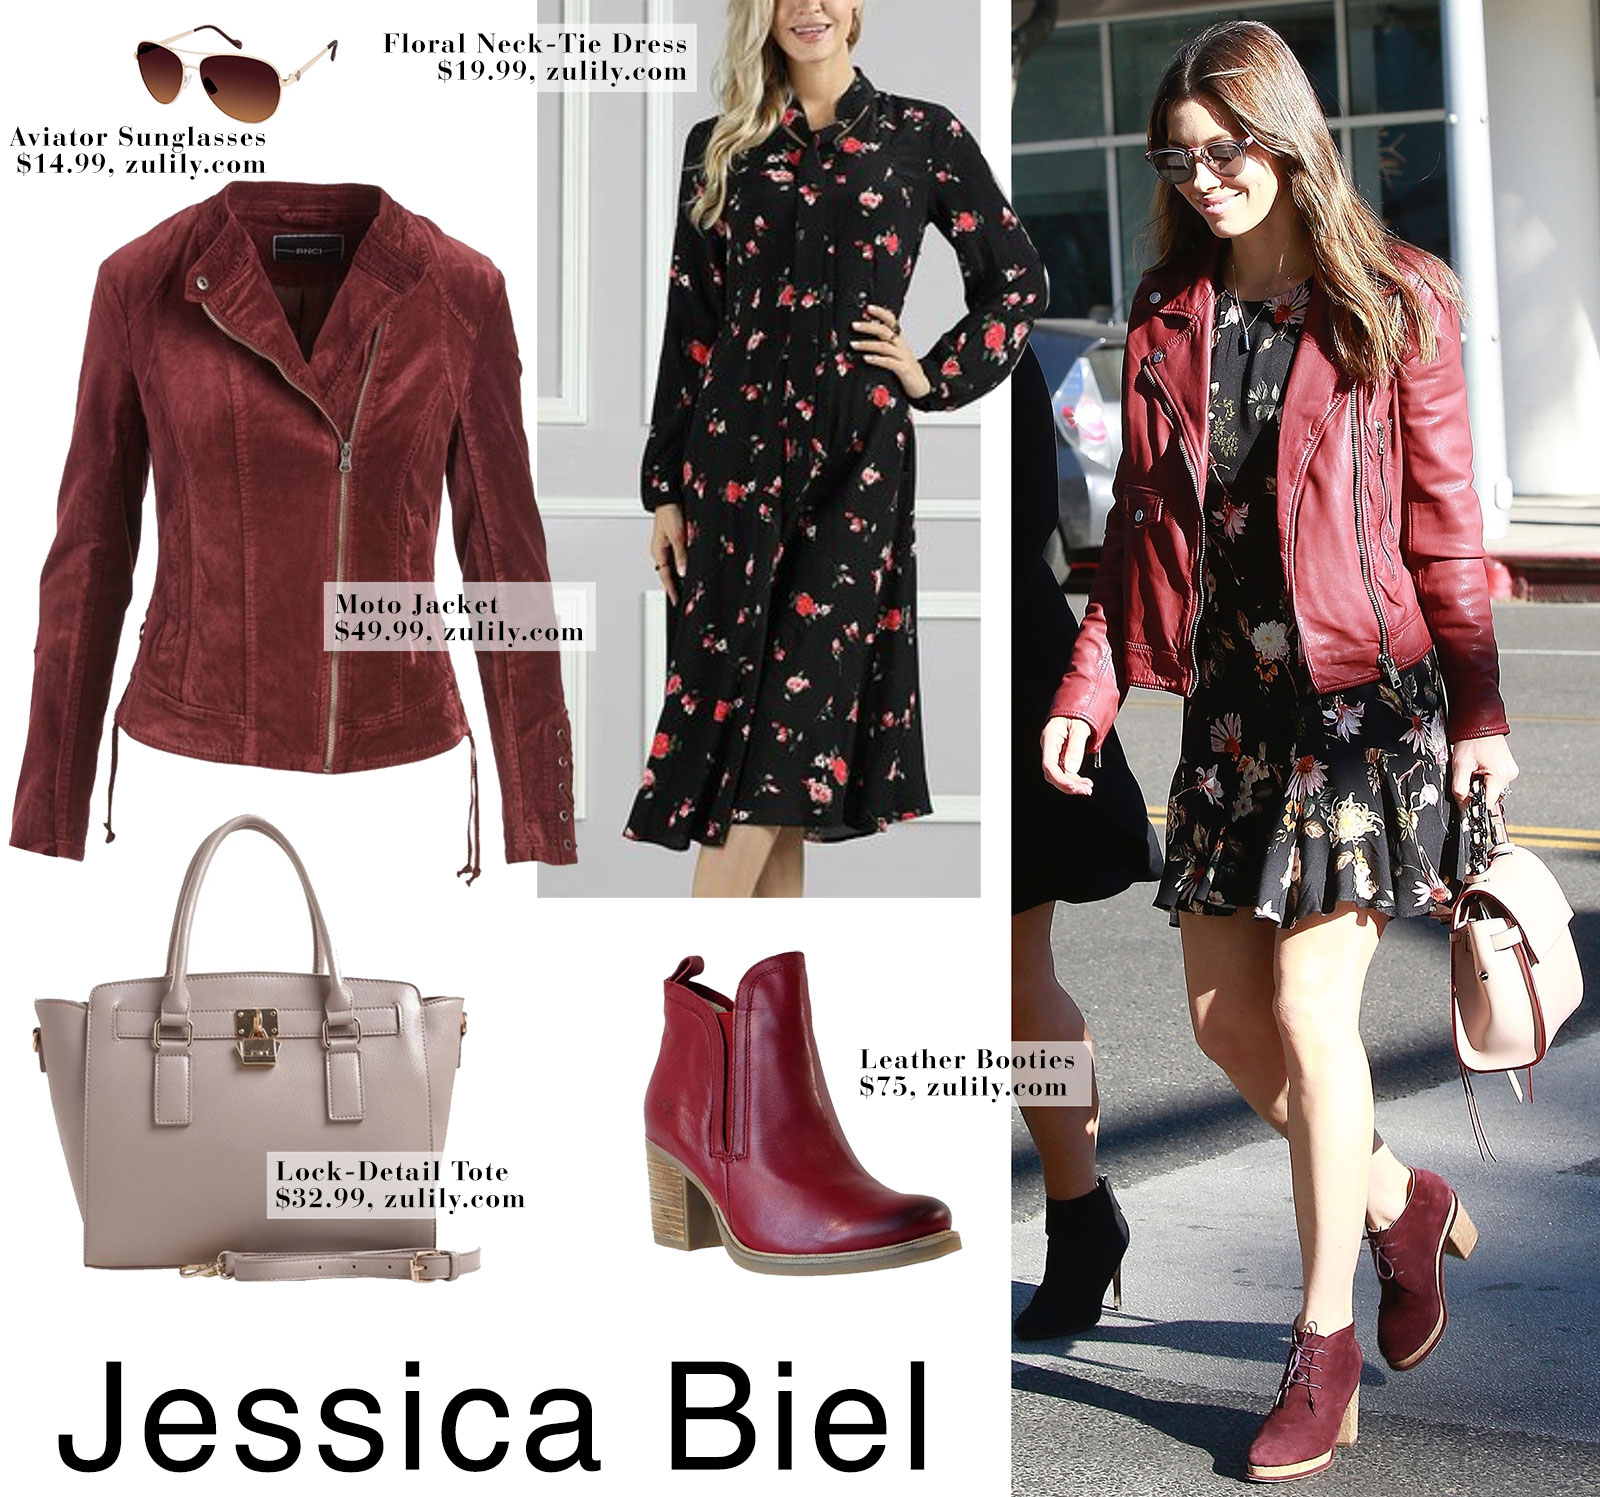 Jessica Biel wears a floral dress with a burgundy red moto jacket and Chanel lace up booties.